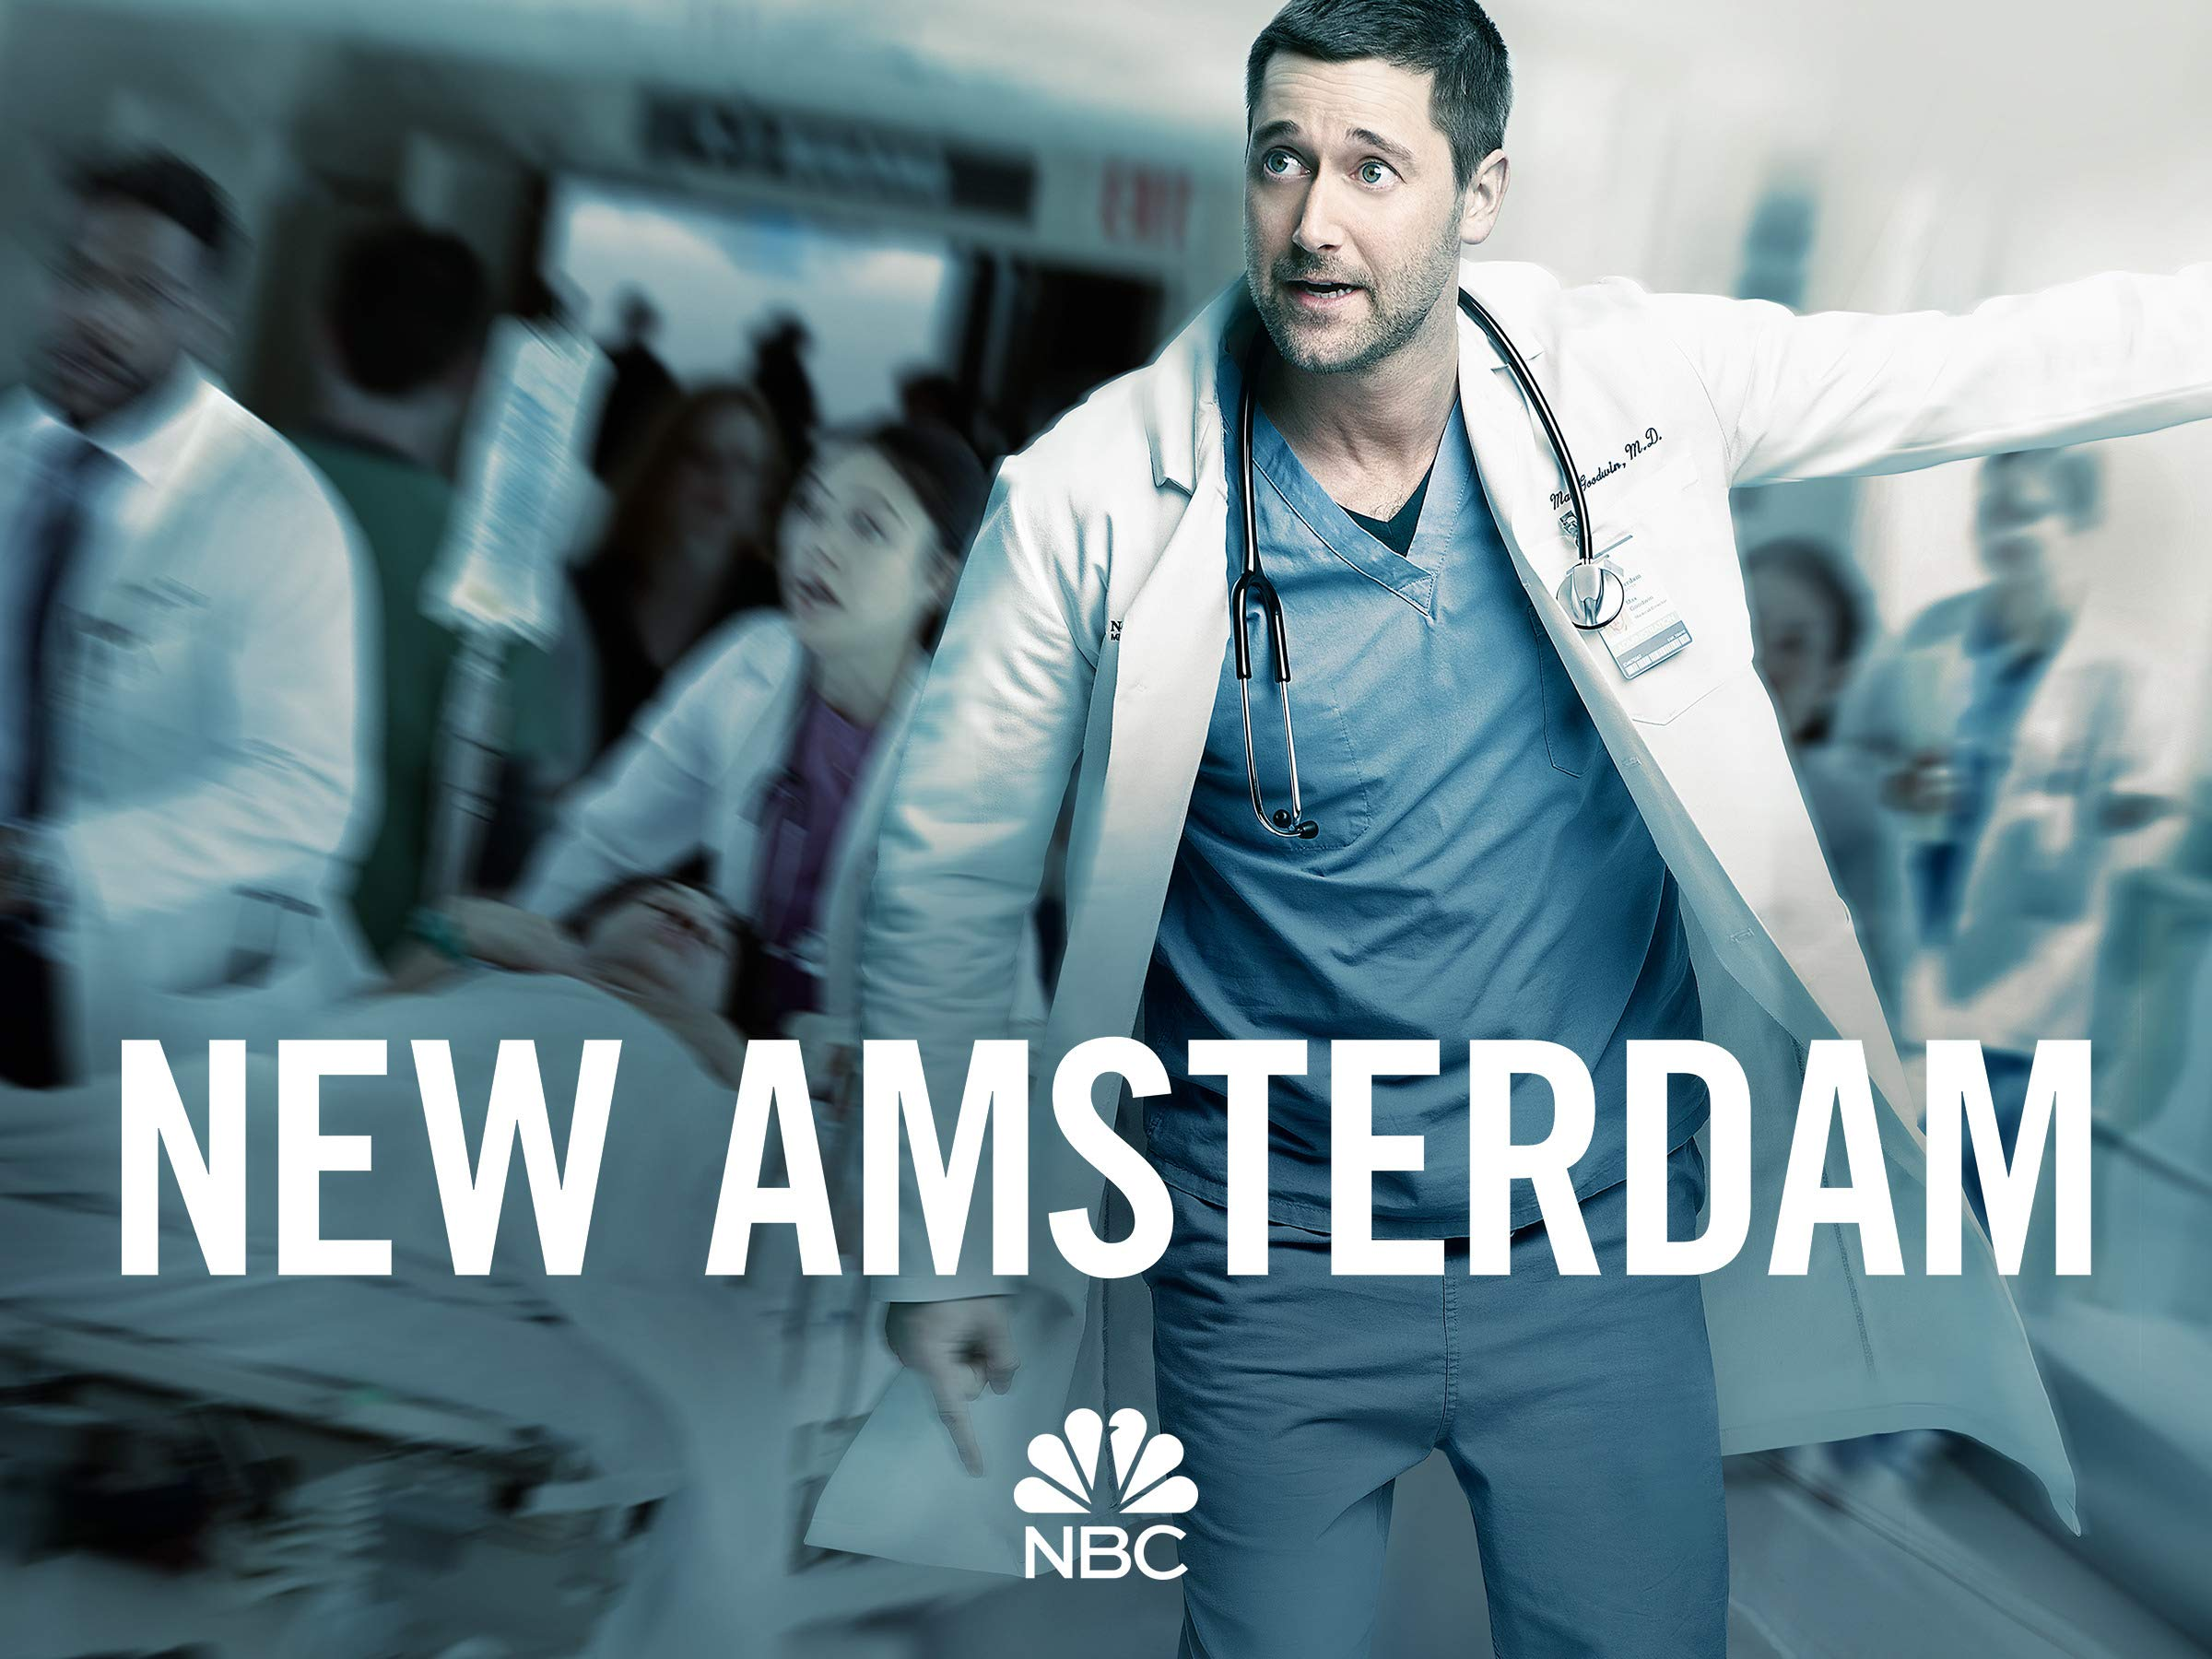 New Amsterdam Season 3: update, Cast, Plot, Trailer and All You Need To Know.